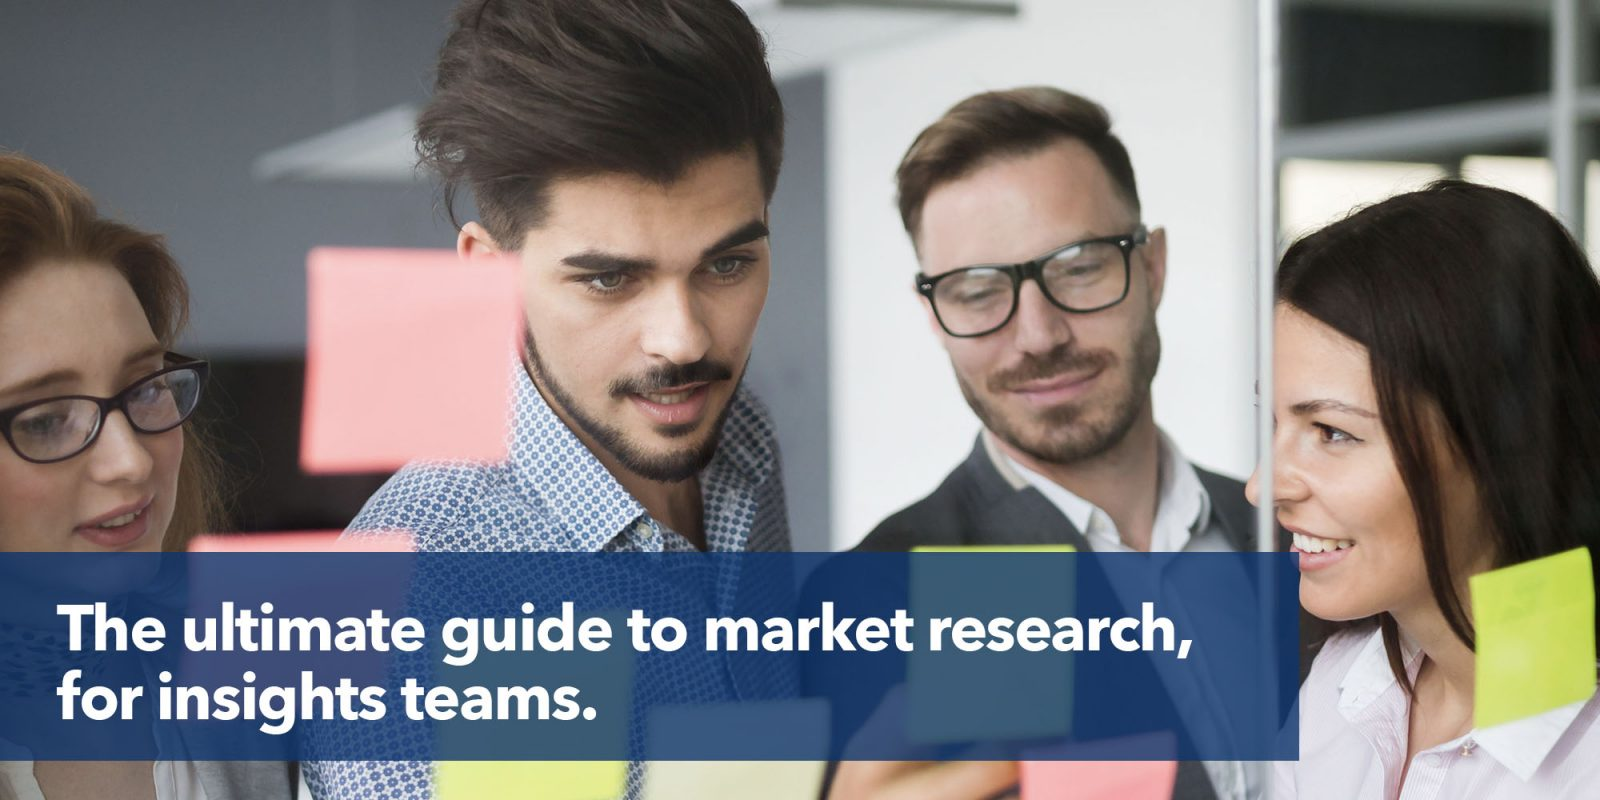 The ultimate guide to market research, for insights teams.